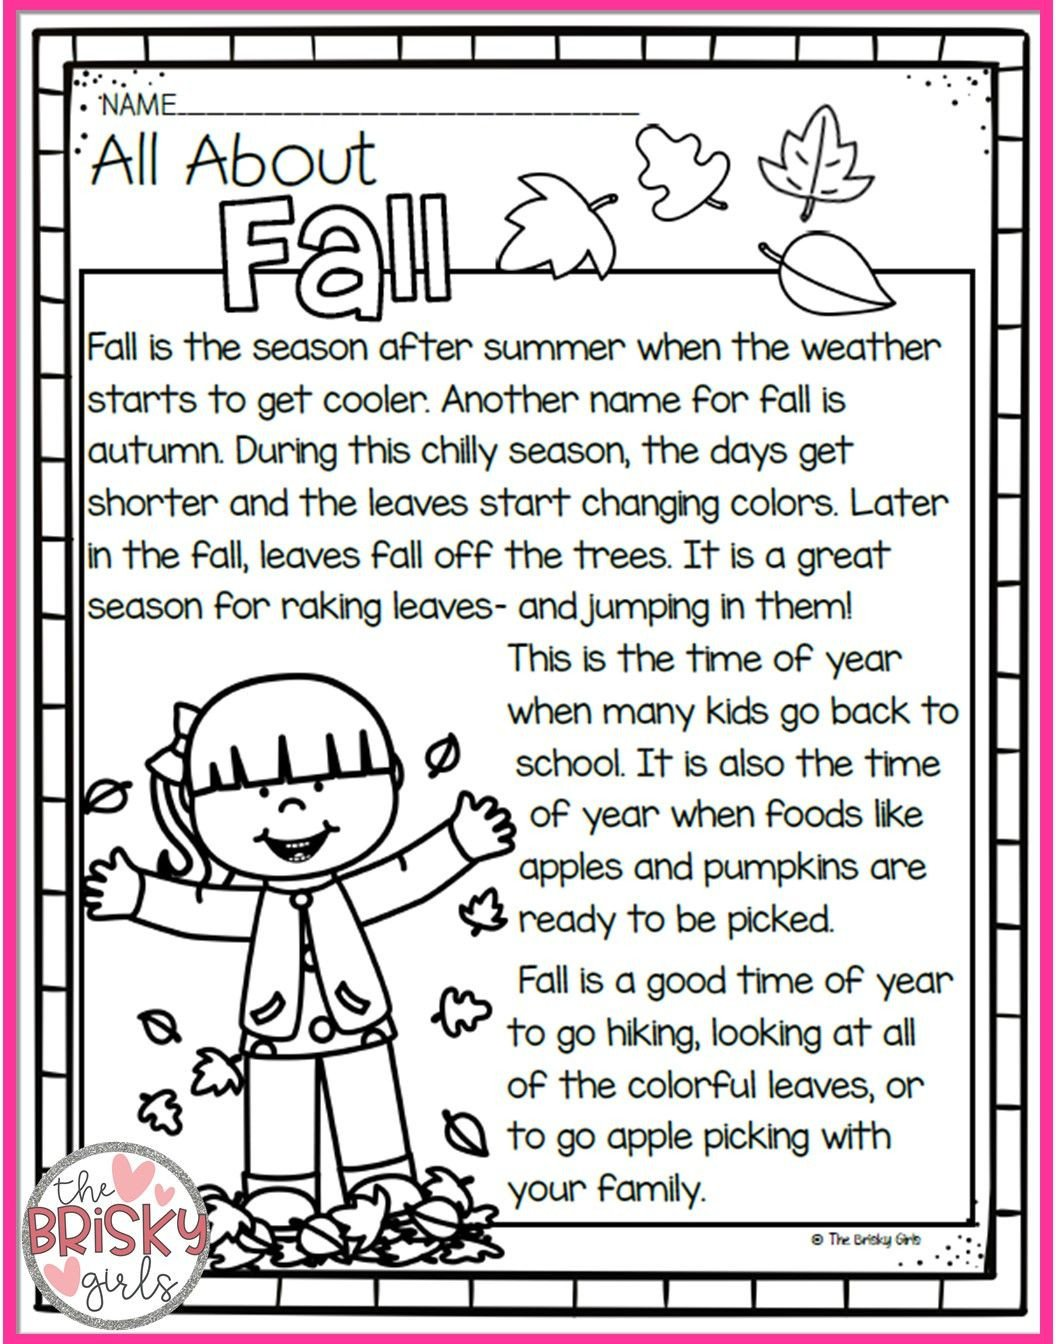 Seasons Worksheets for First Grade the Four Seasons Spring Summer Fall Winter Seasons